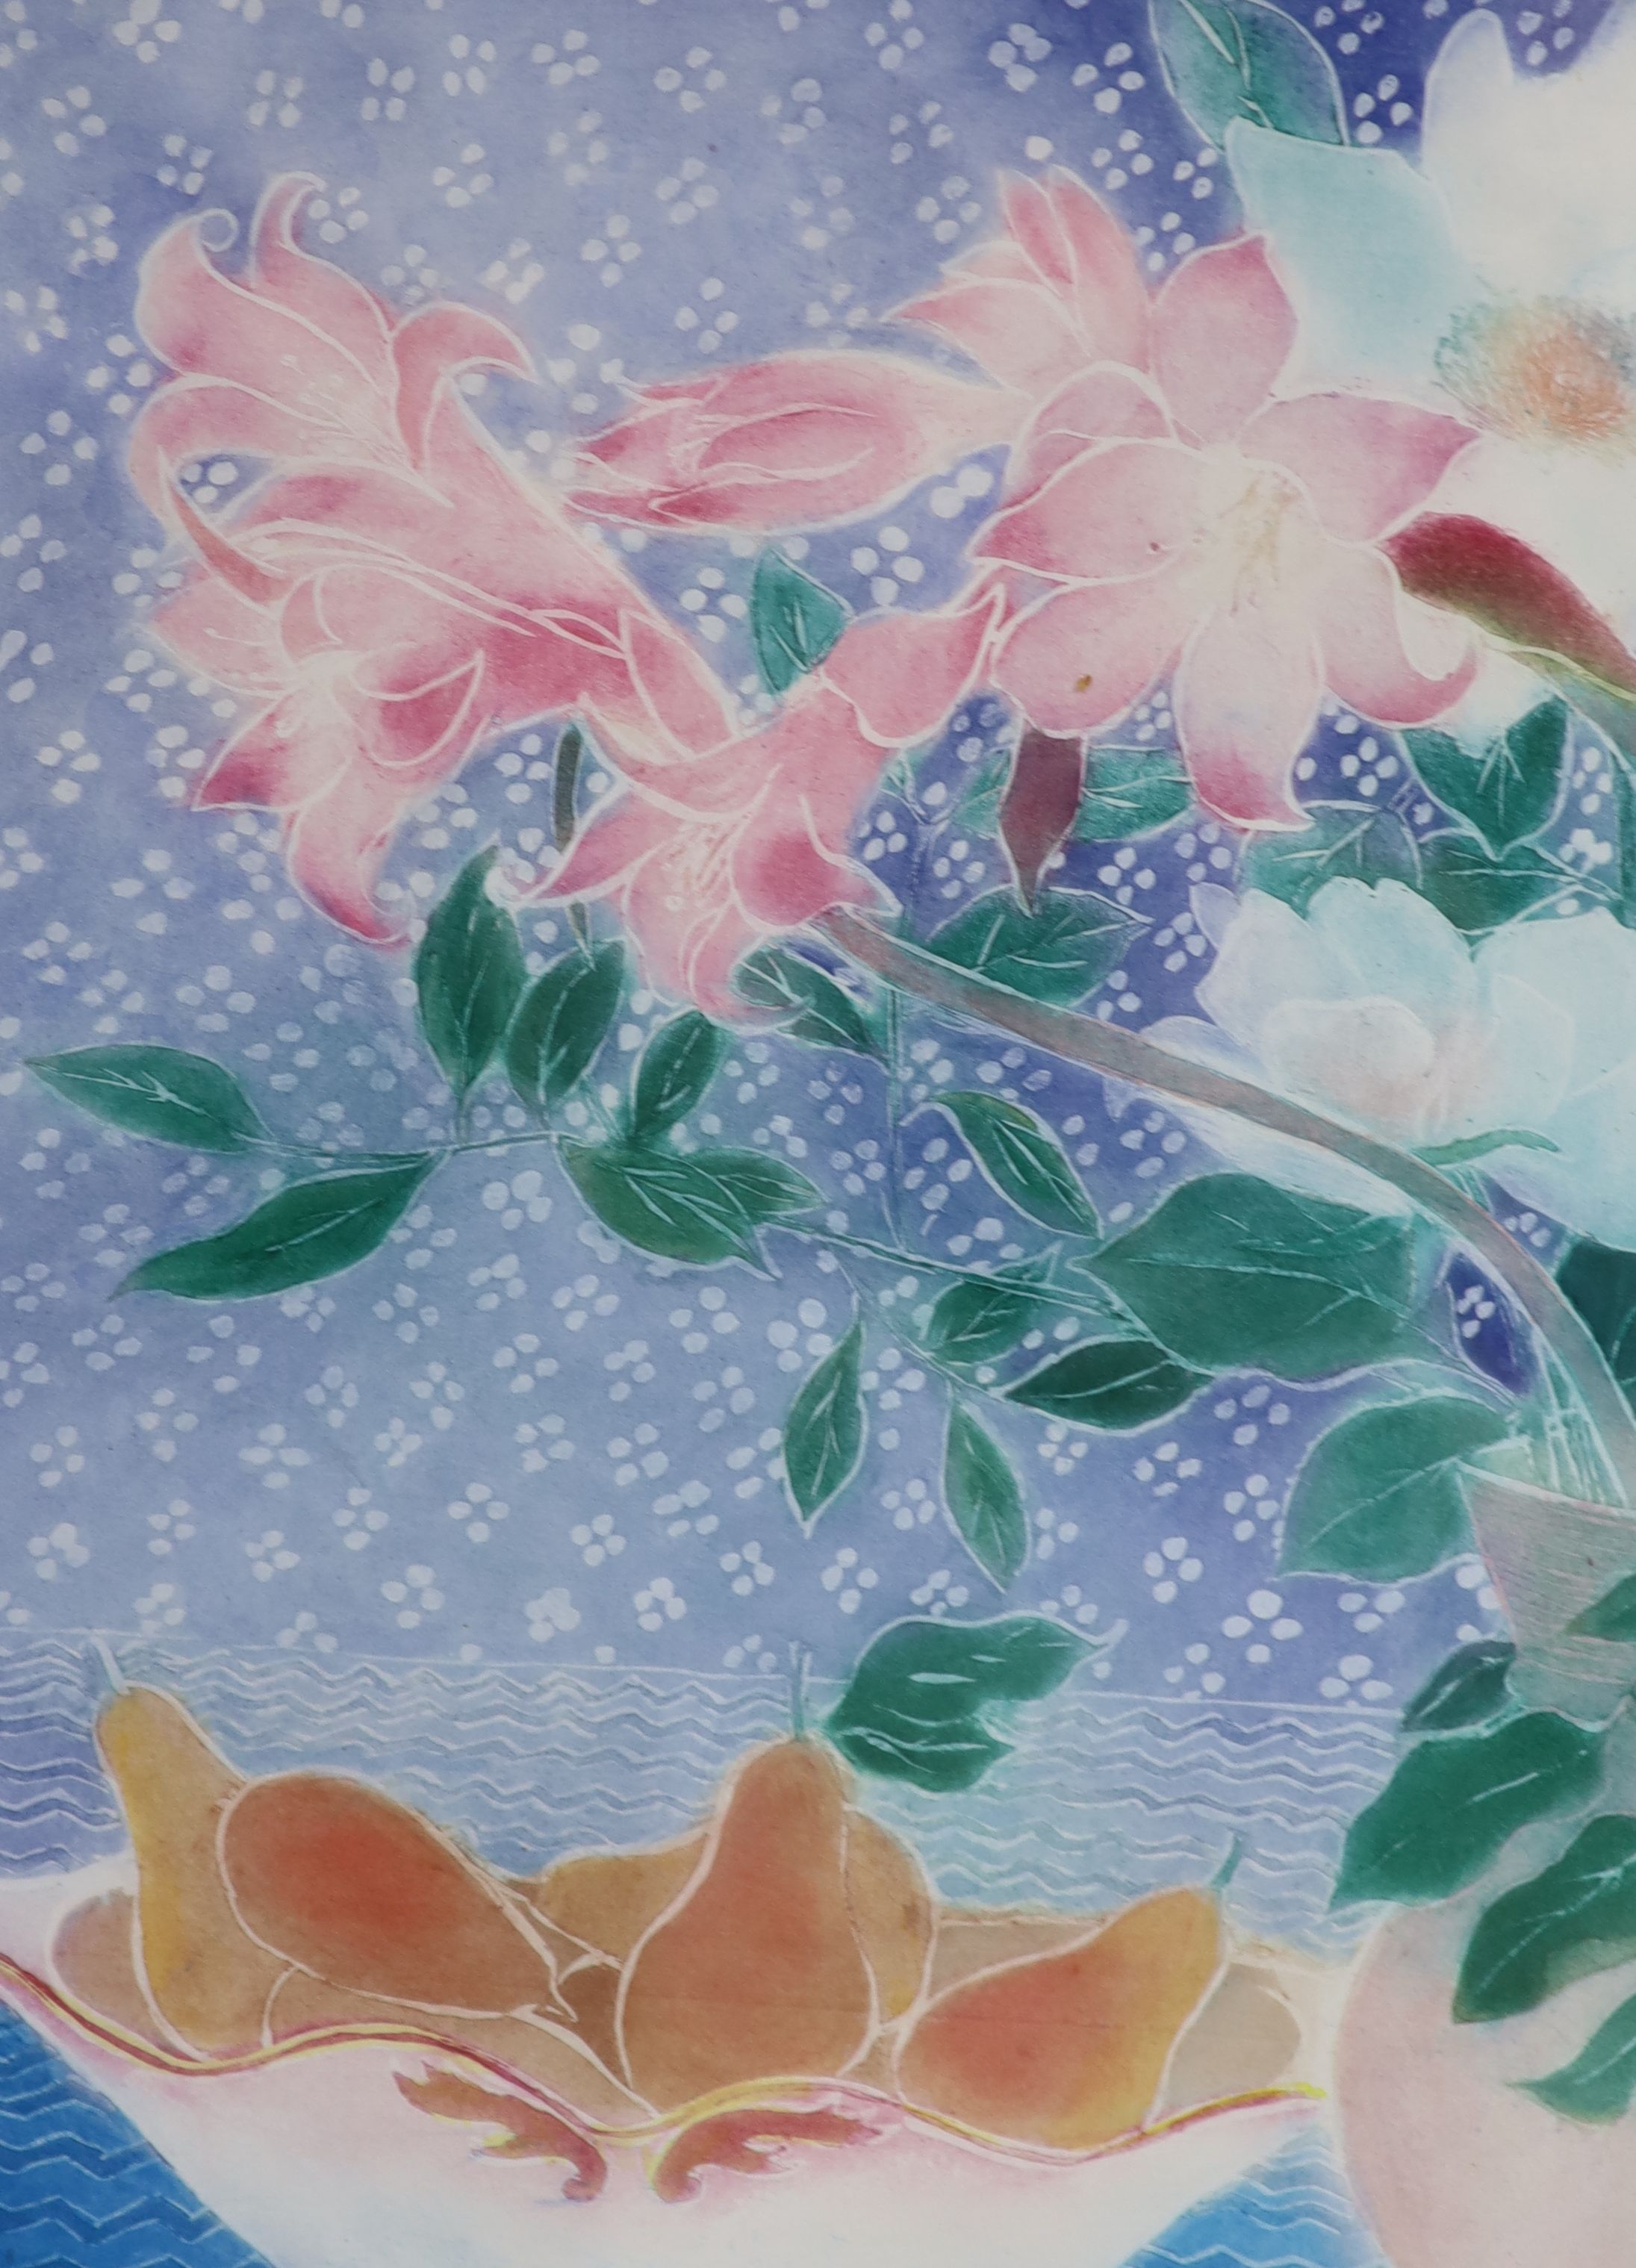 Winifred Pickard (1908-1996), limited edition print, Flowers and Pears, signed in pencil, 13/75,